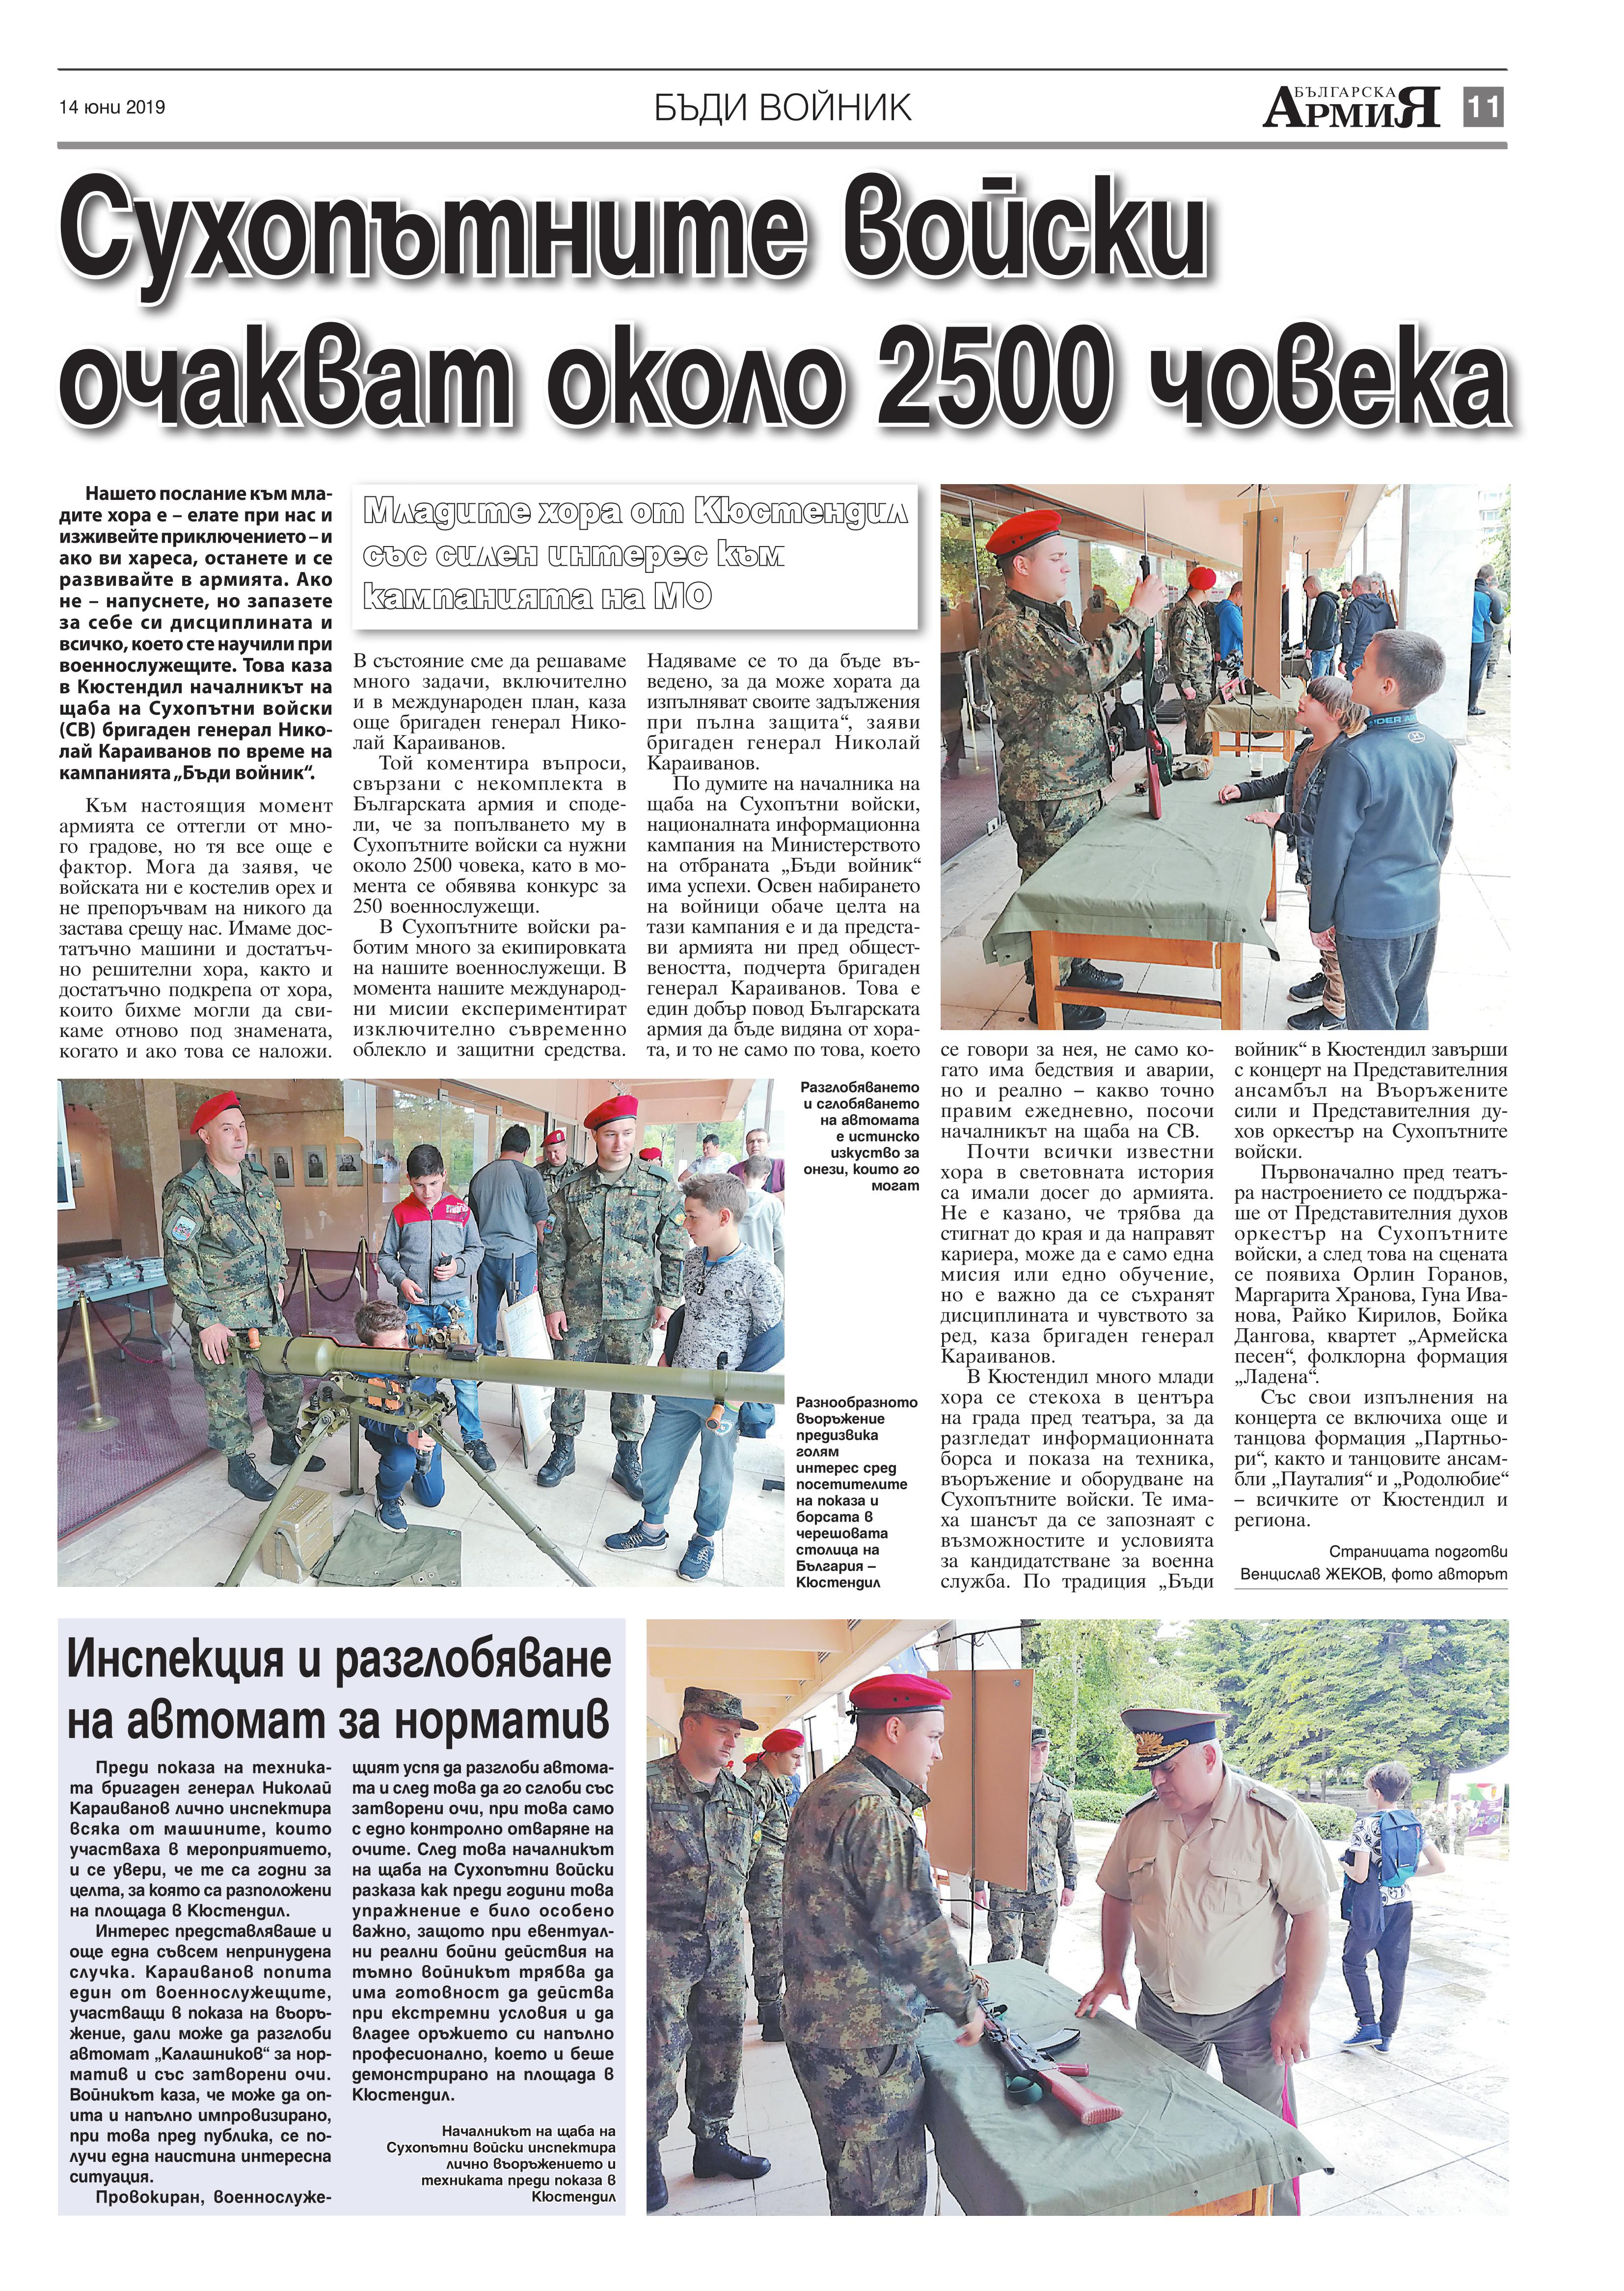 https://armymedia.bg/wp-content/uploads/2015/06/11.page1_-99.jpg